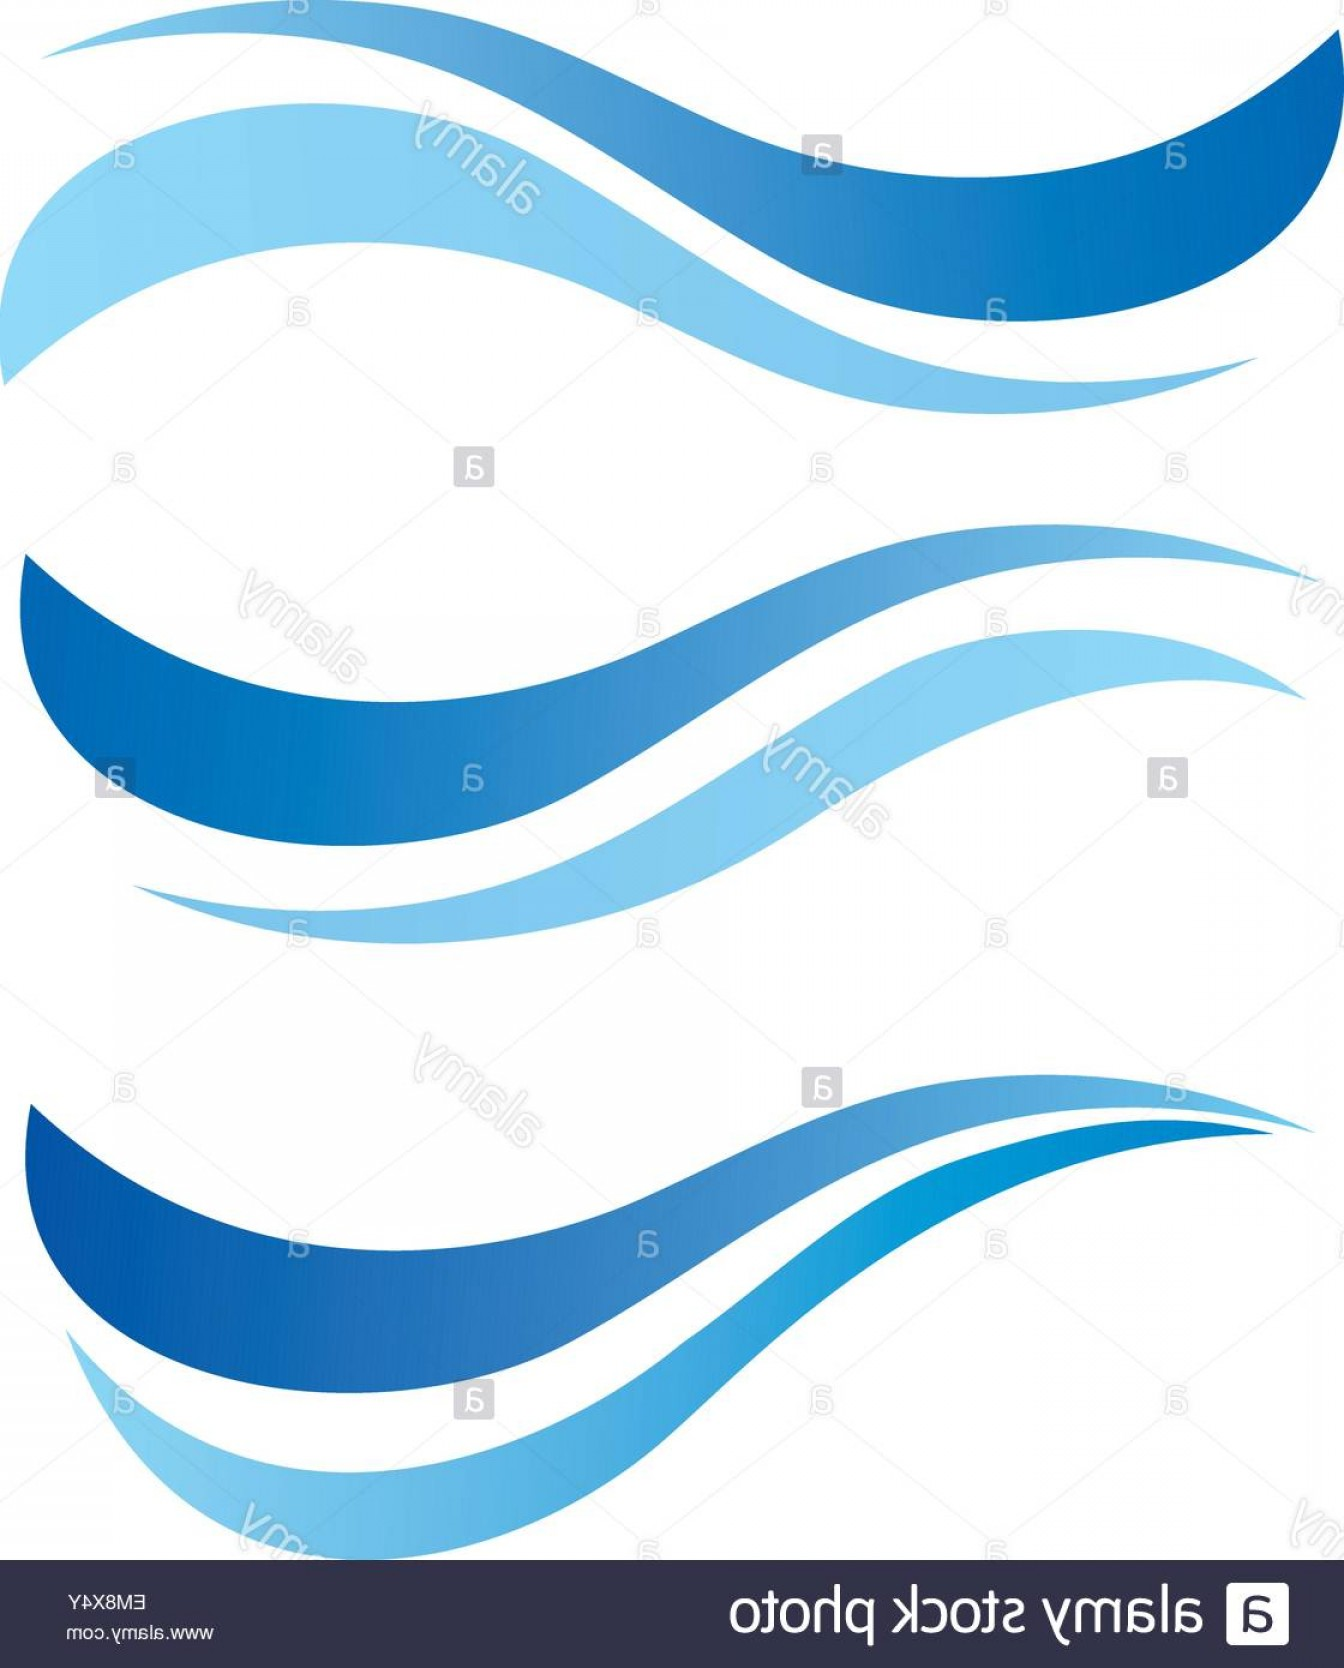 Water Flow Vector: Stock Photo Water Waves Design Elements Vector Set